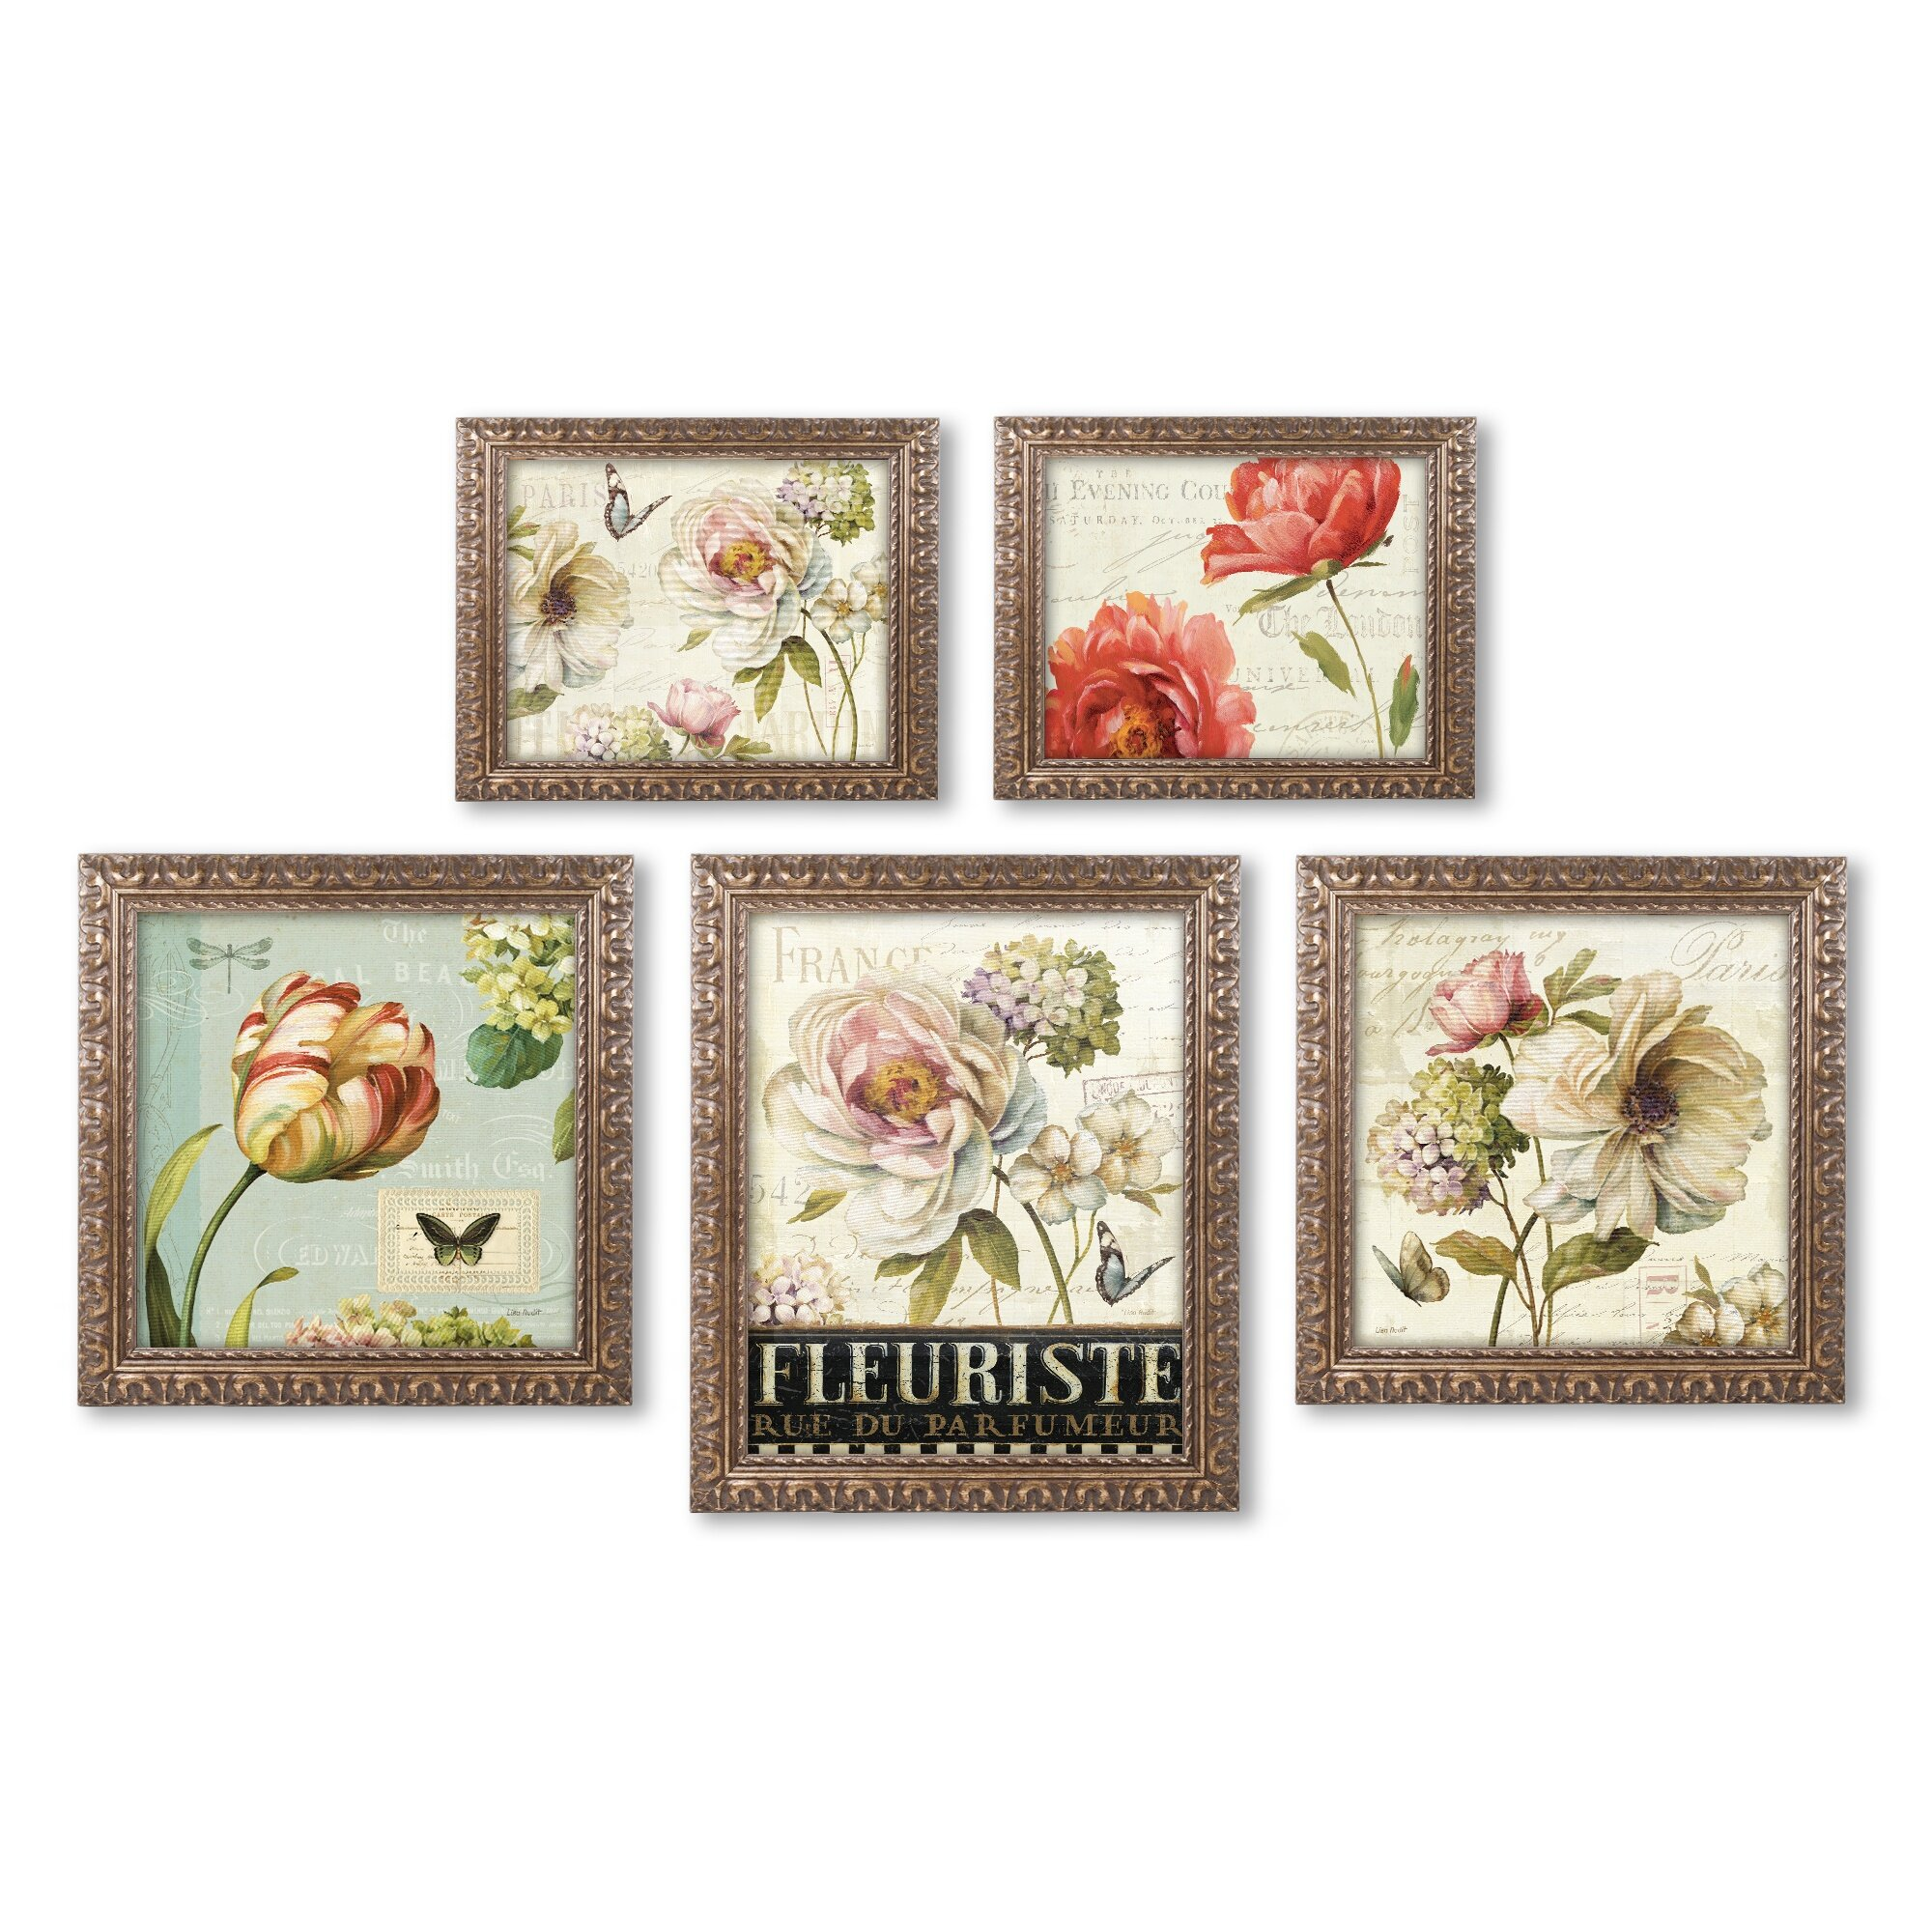 Wall Decor Set Of 5 : Lisa audit floral wall piece ornate framed graphic art